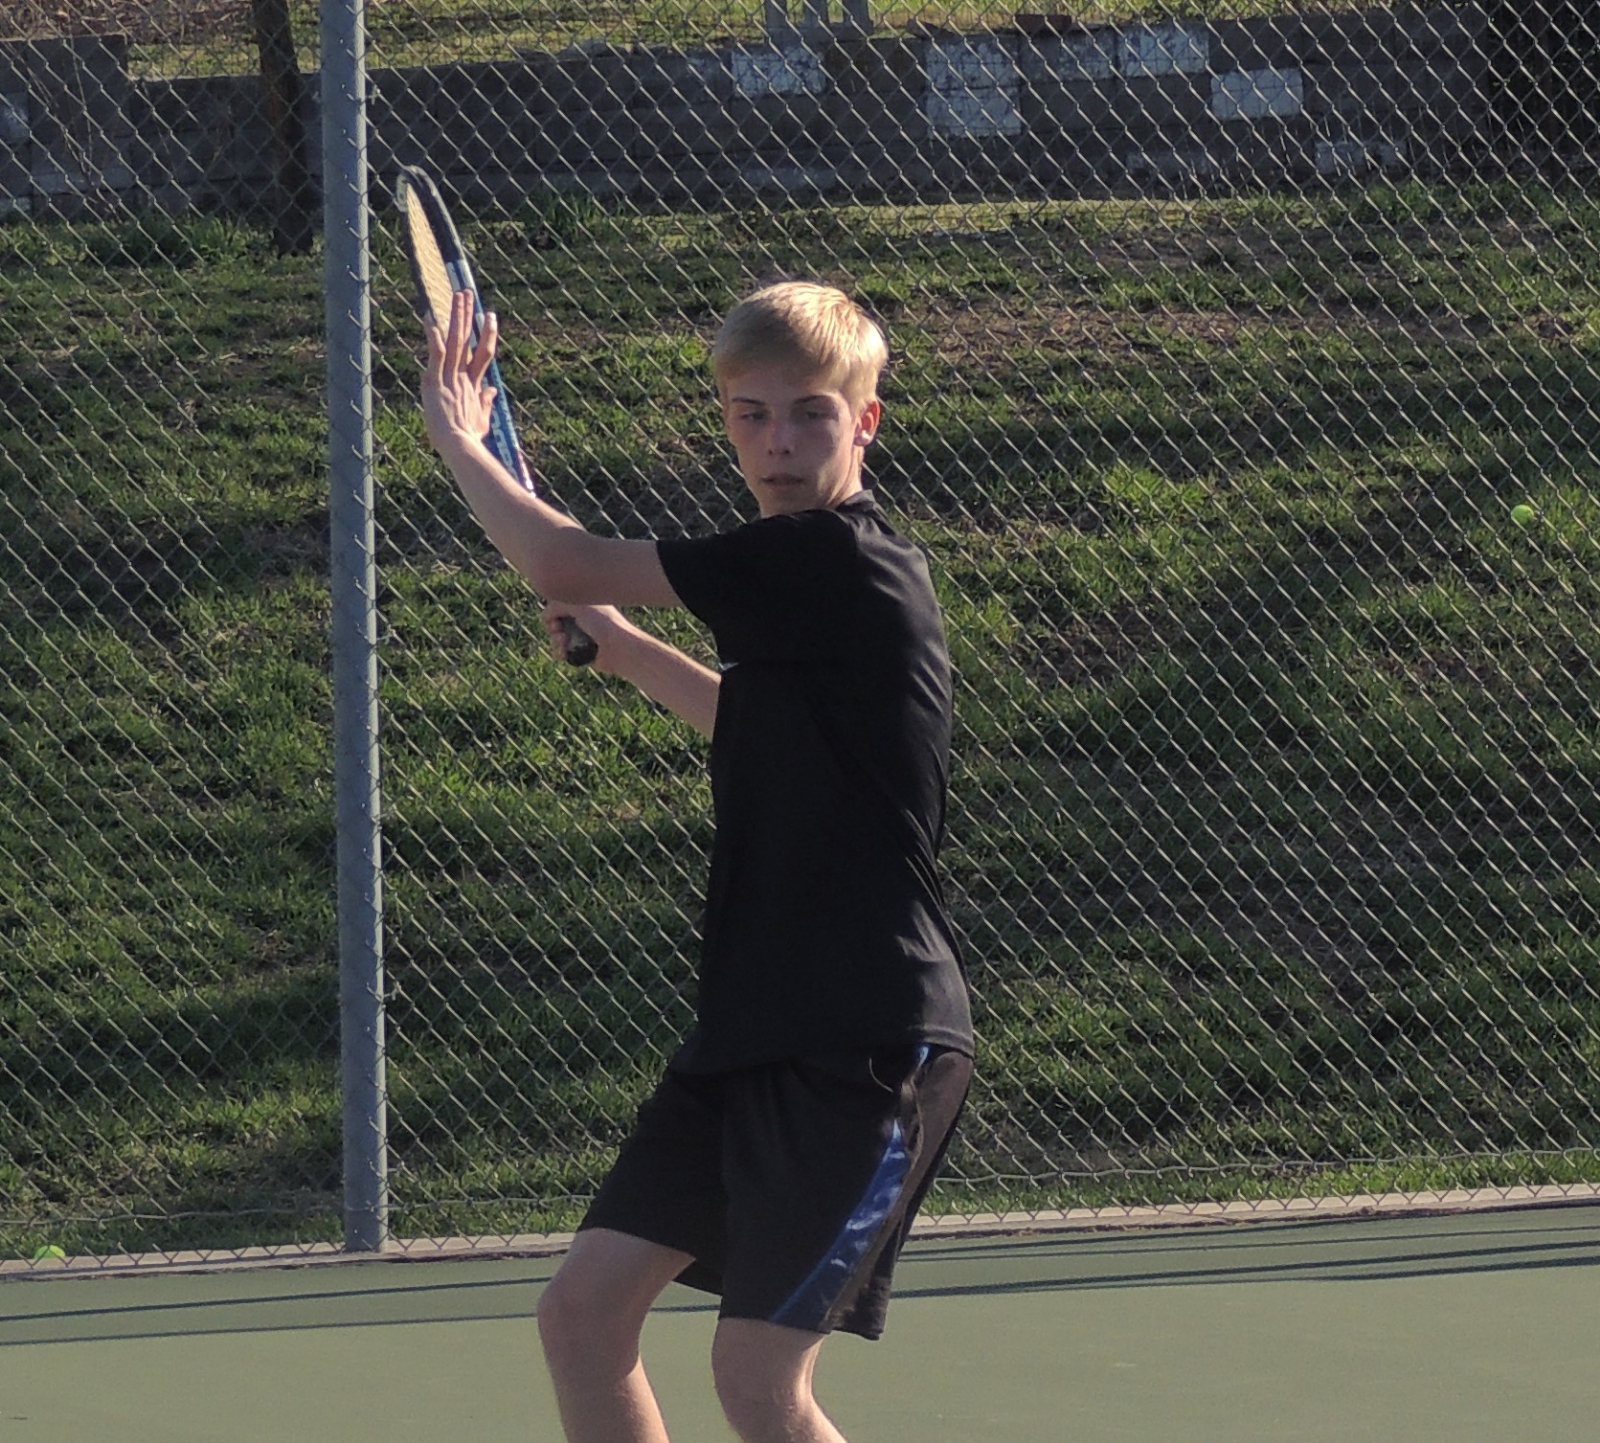 Blue Jay Singles Players Lead Tennis Team to a Runner Up Finish